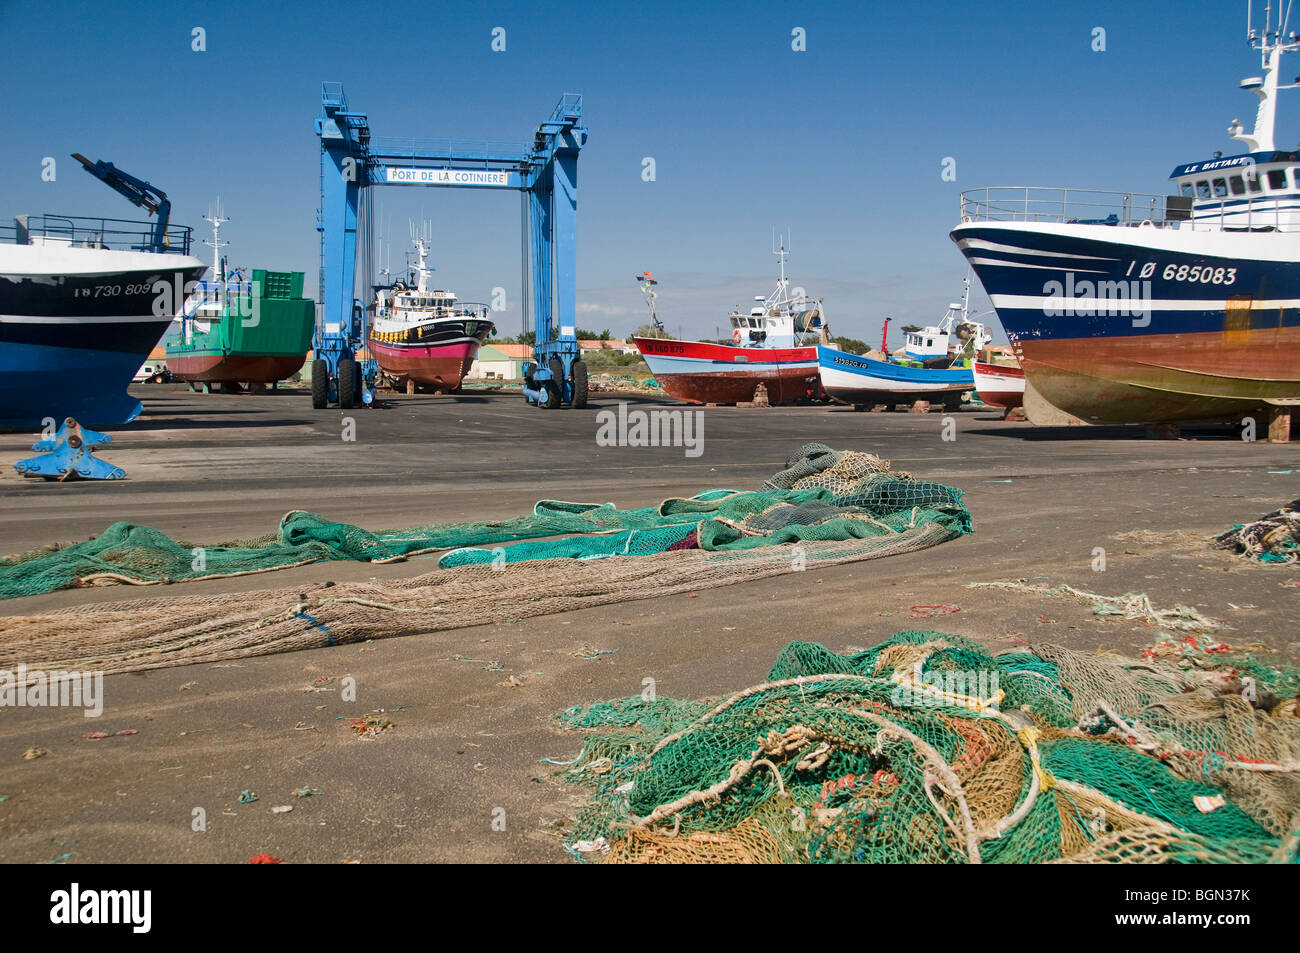 La Cotinière dry dock with trawlers, gantry crane, and fishing nets. (Oléron Island, France) - Stock Image